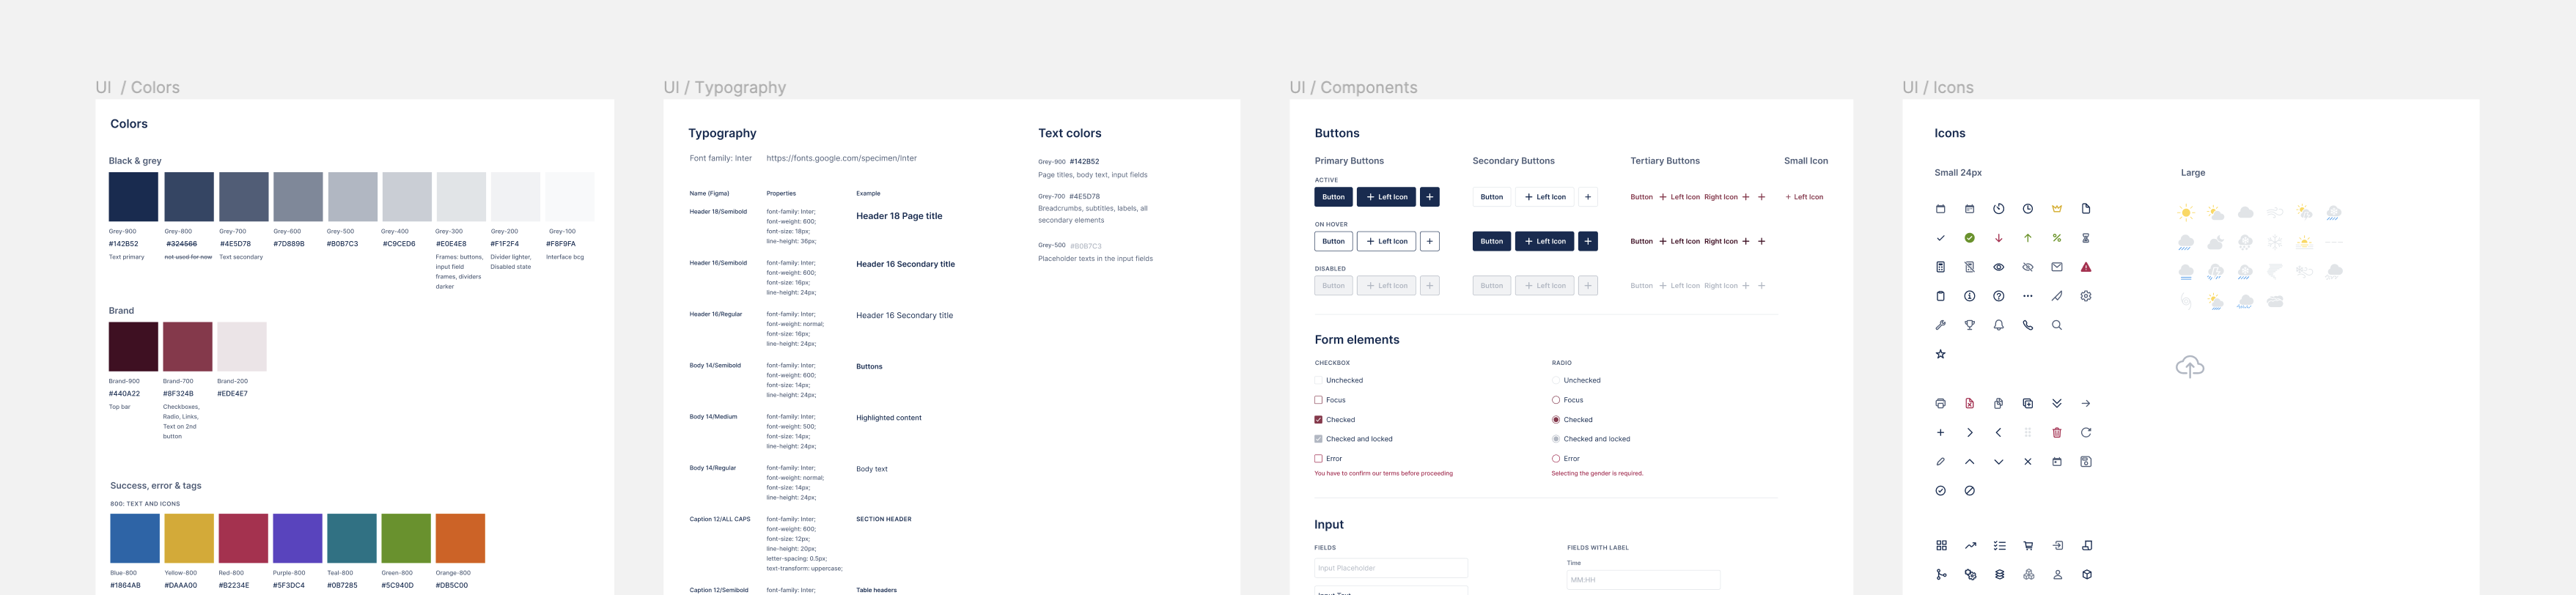 A screenshot from the design system in figma